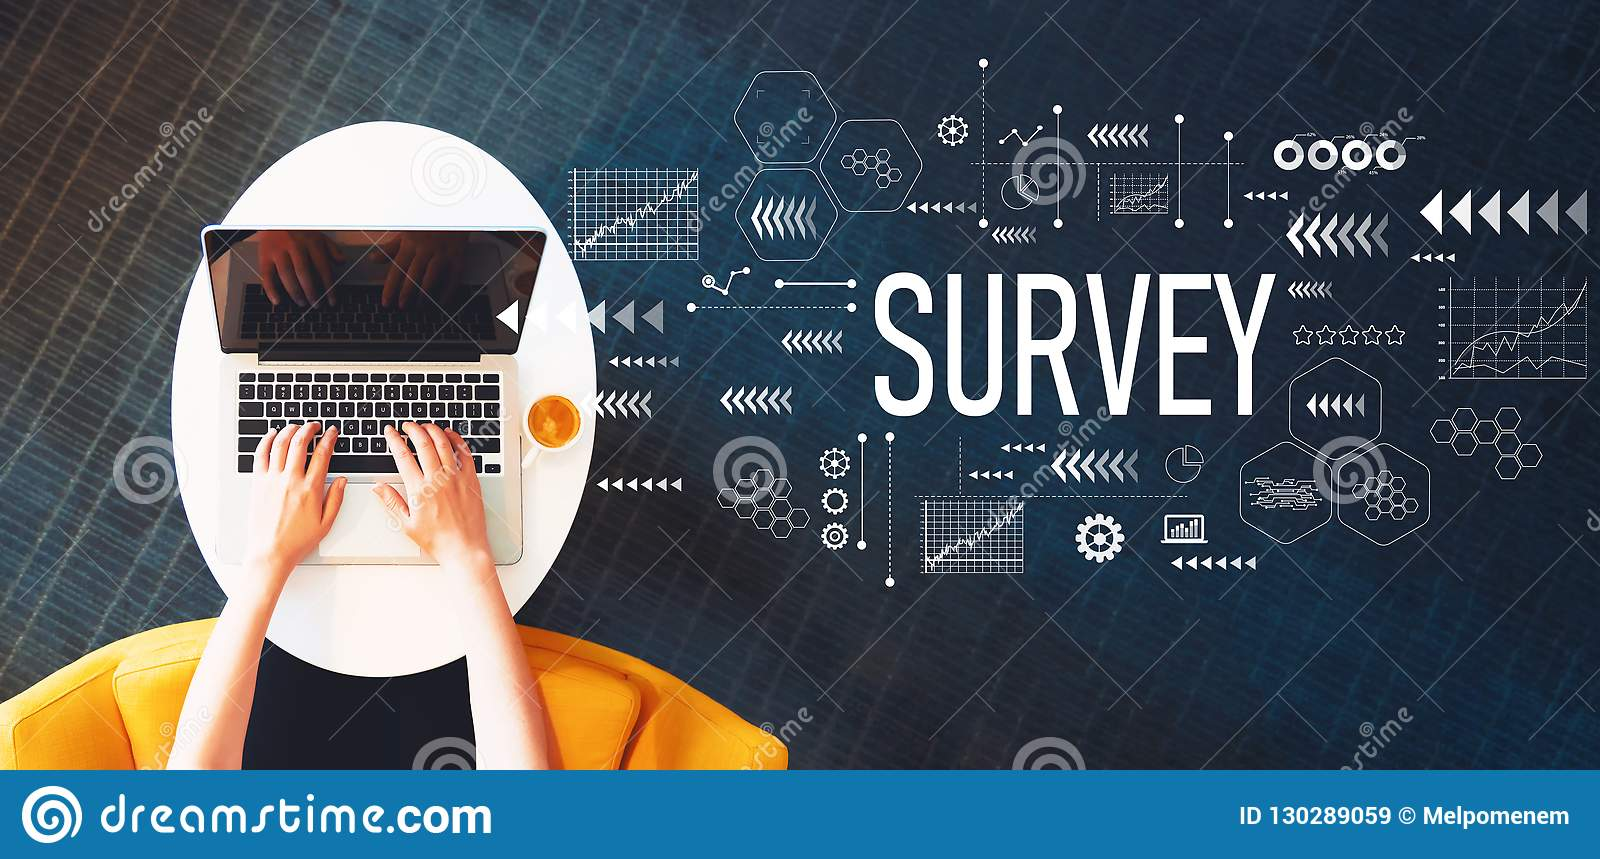 Survey with person using a laptop